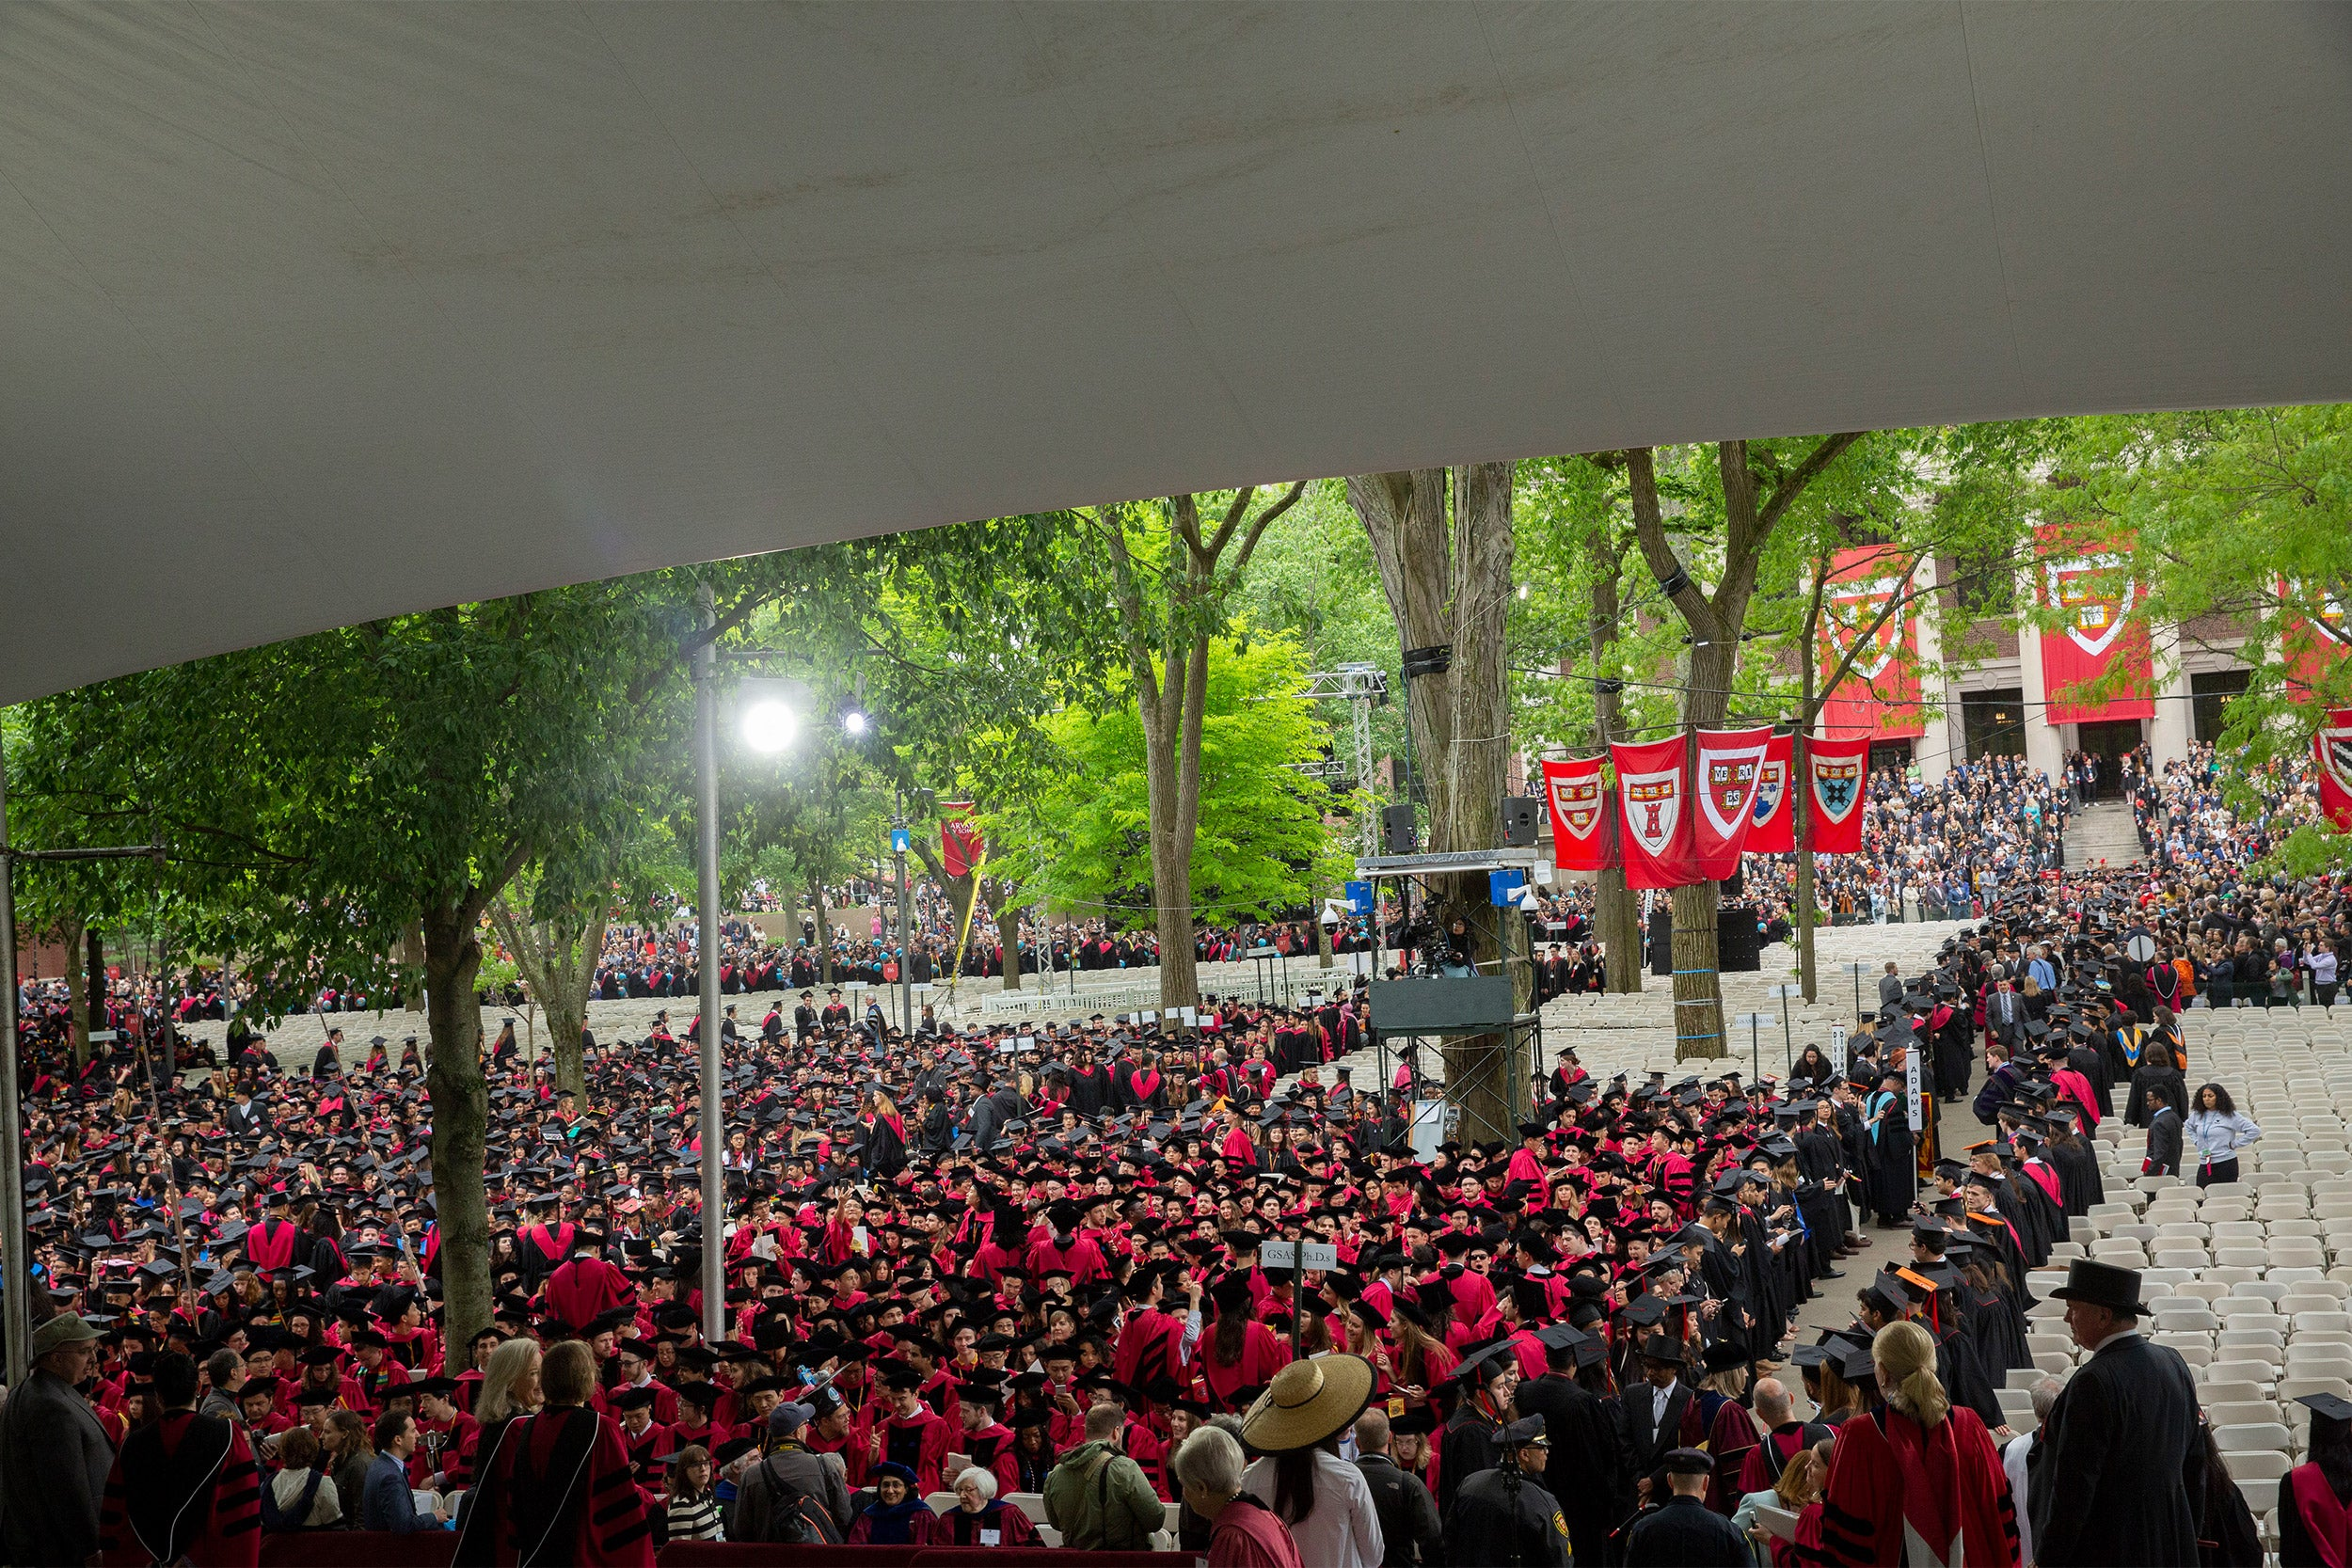 Commencement crowd in Harvard Yard 2019.